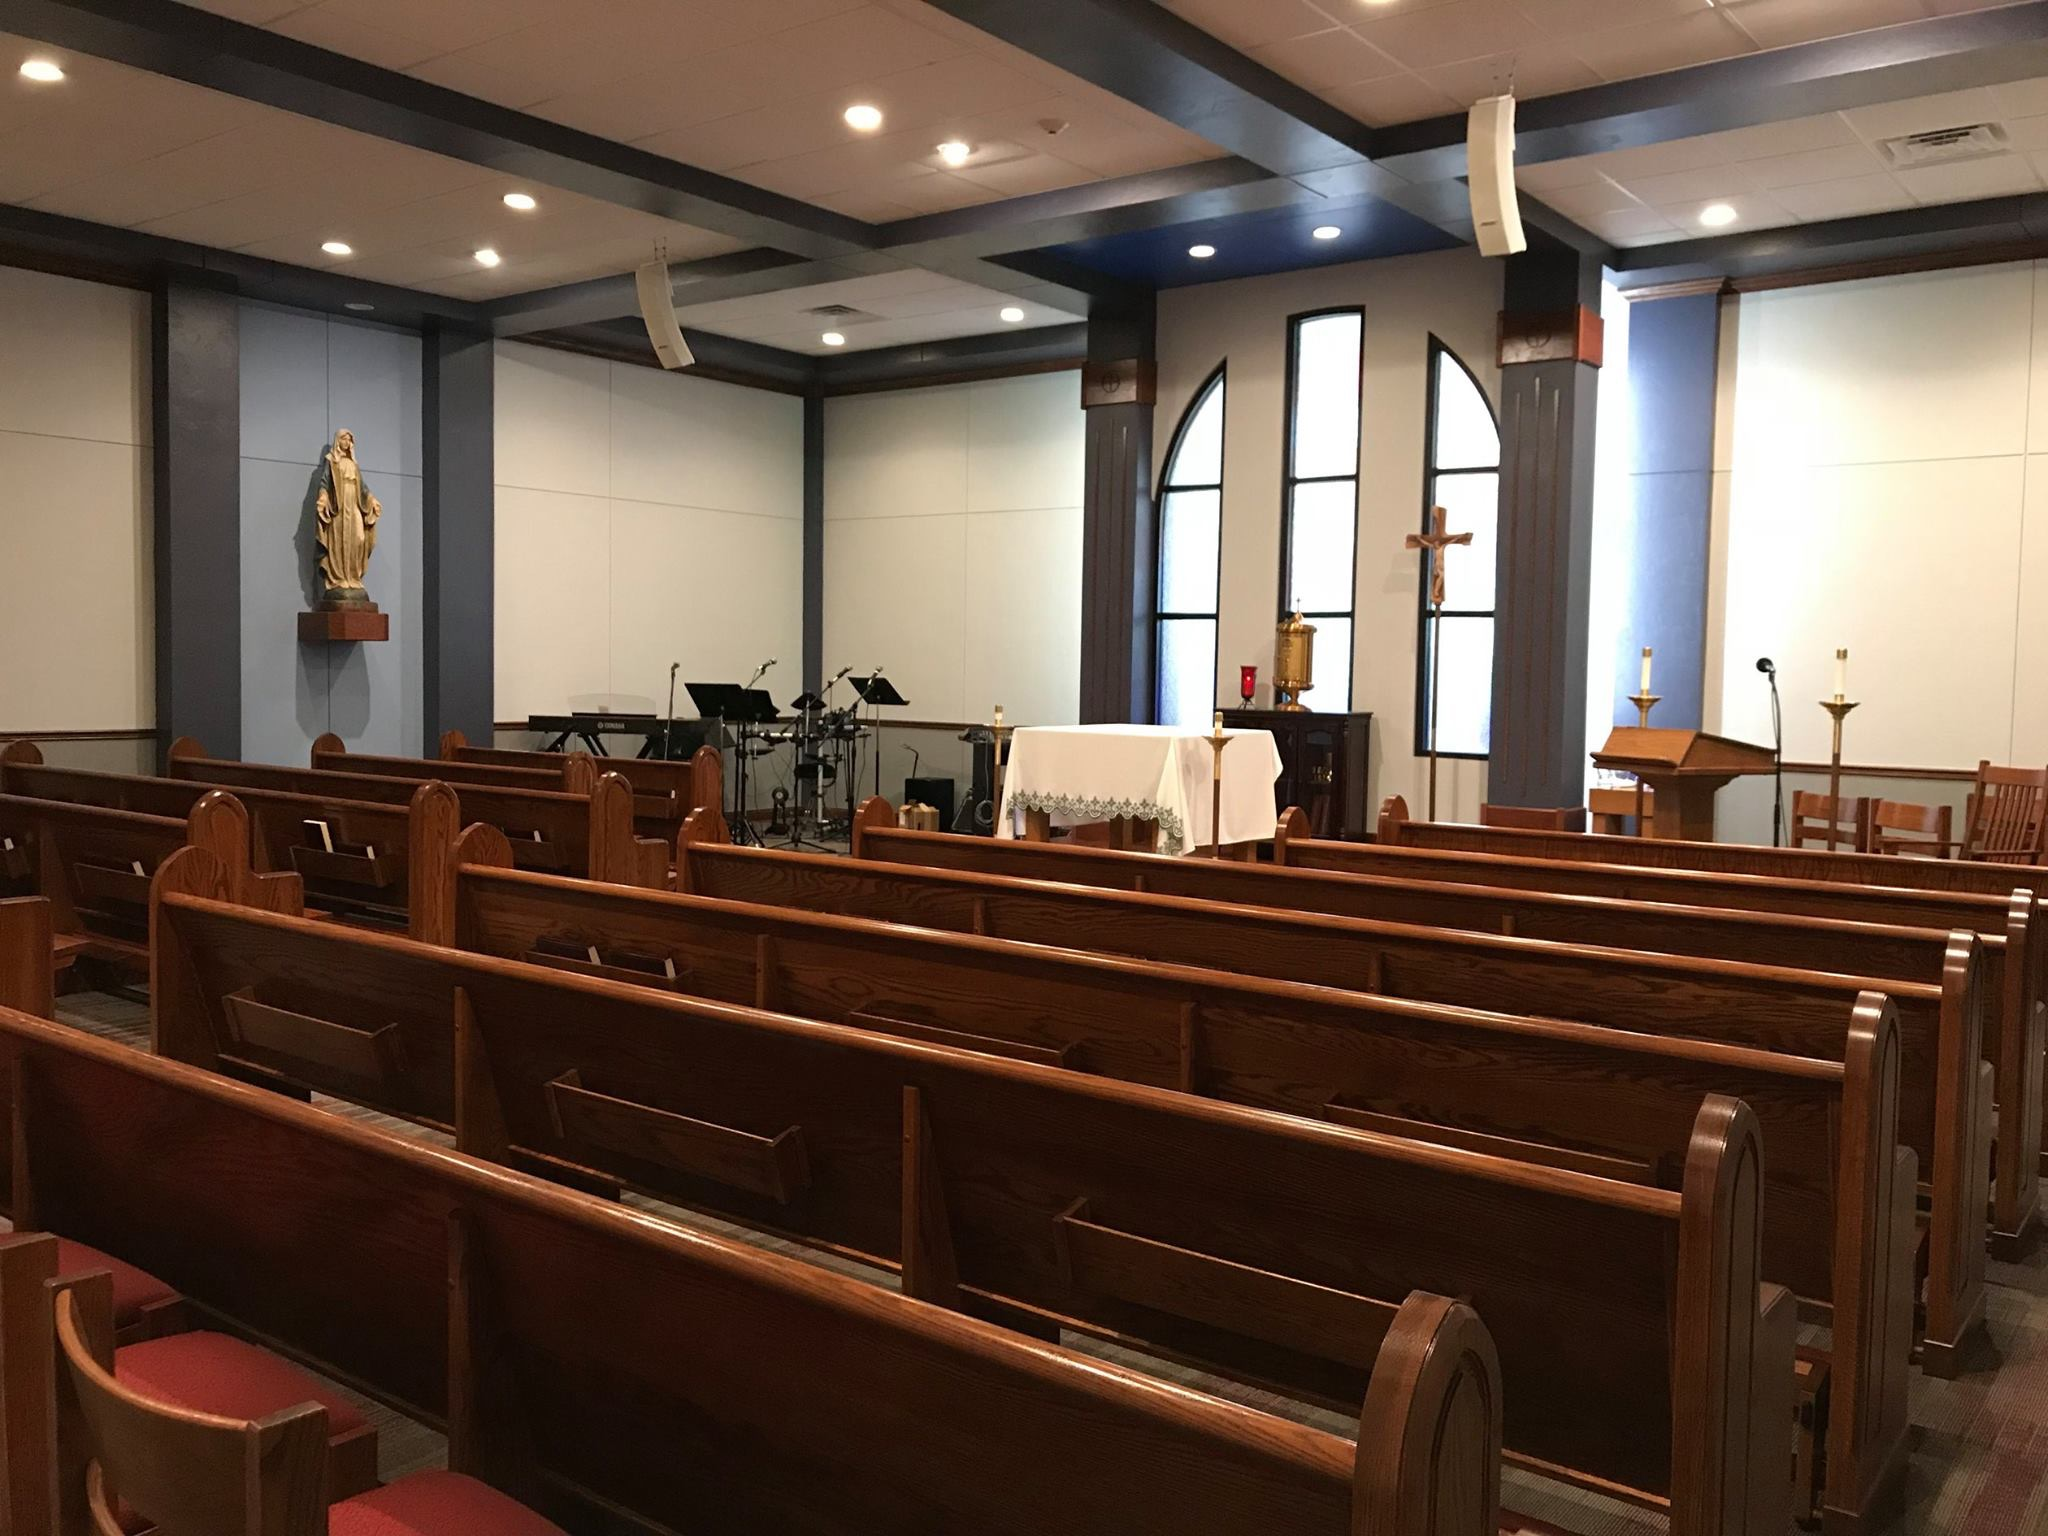 Chapel at West Texas A&M Catholic Student Center – AFTER (Phase 1, prior to Sacred Art & Furnishings)